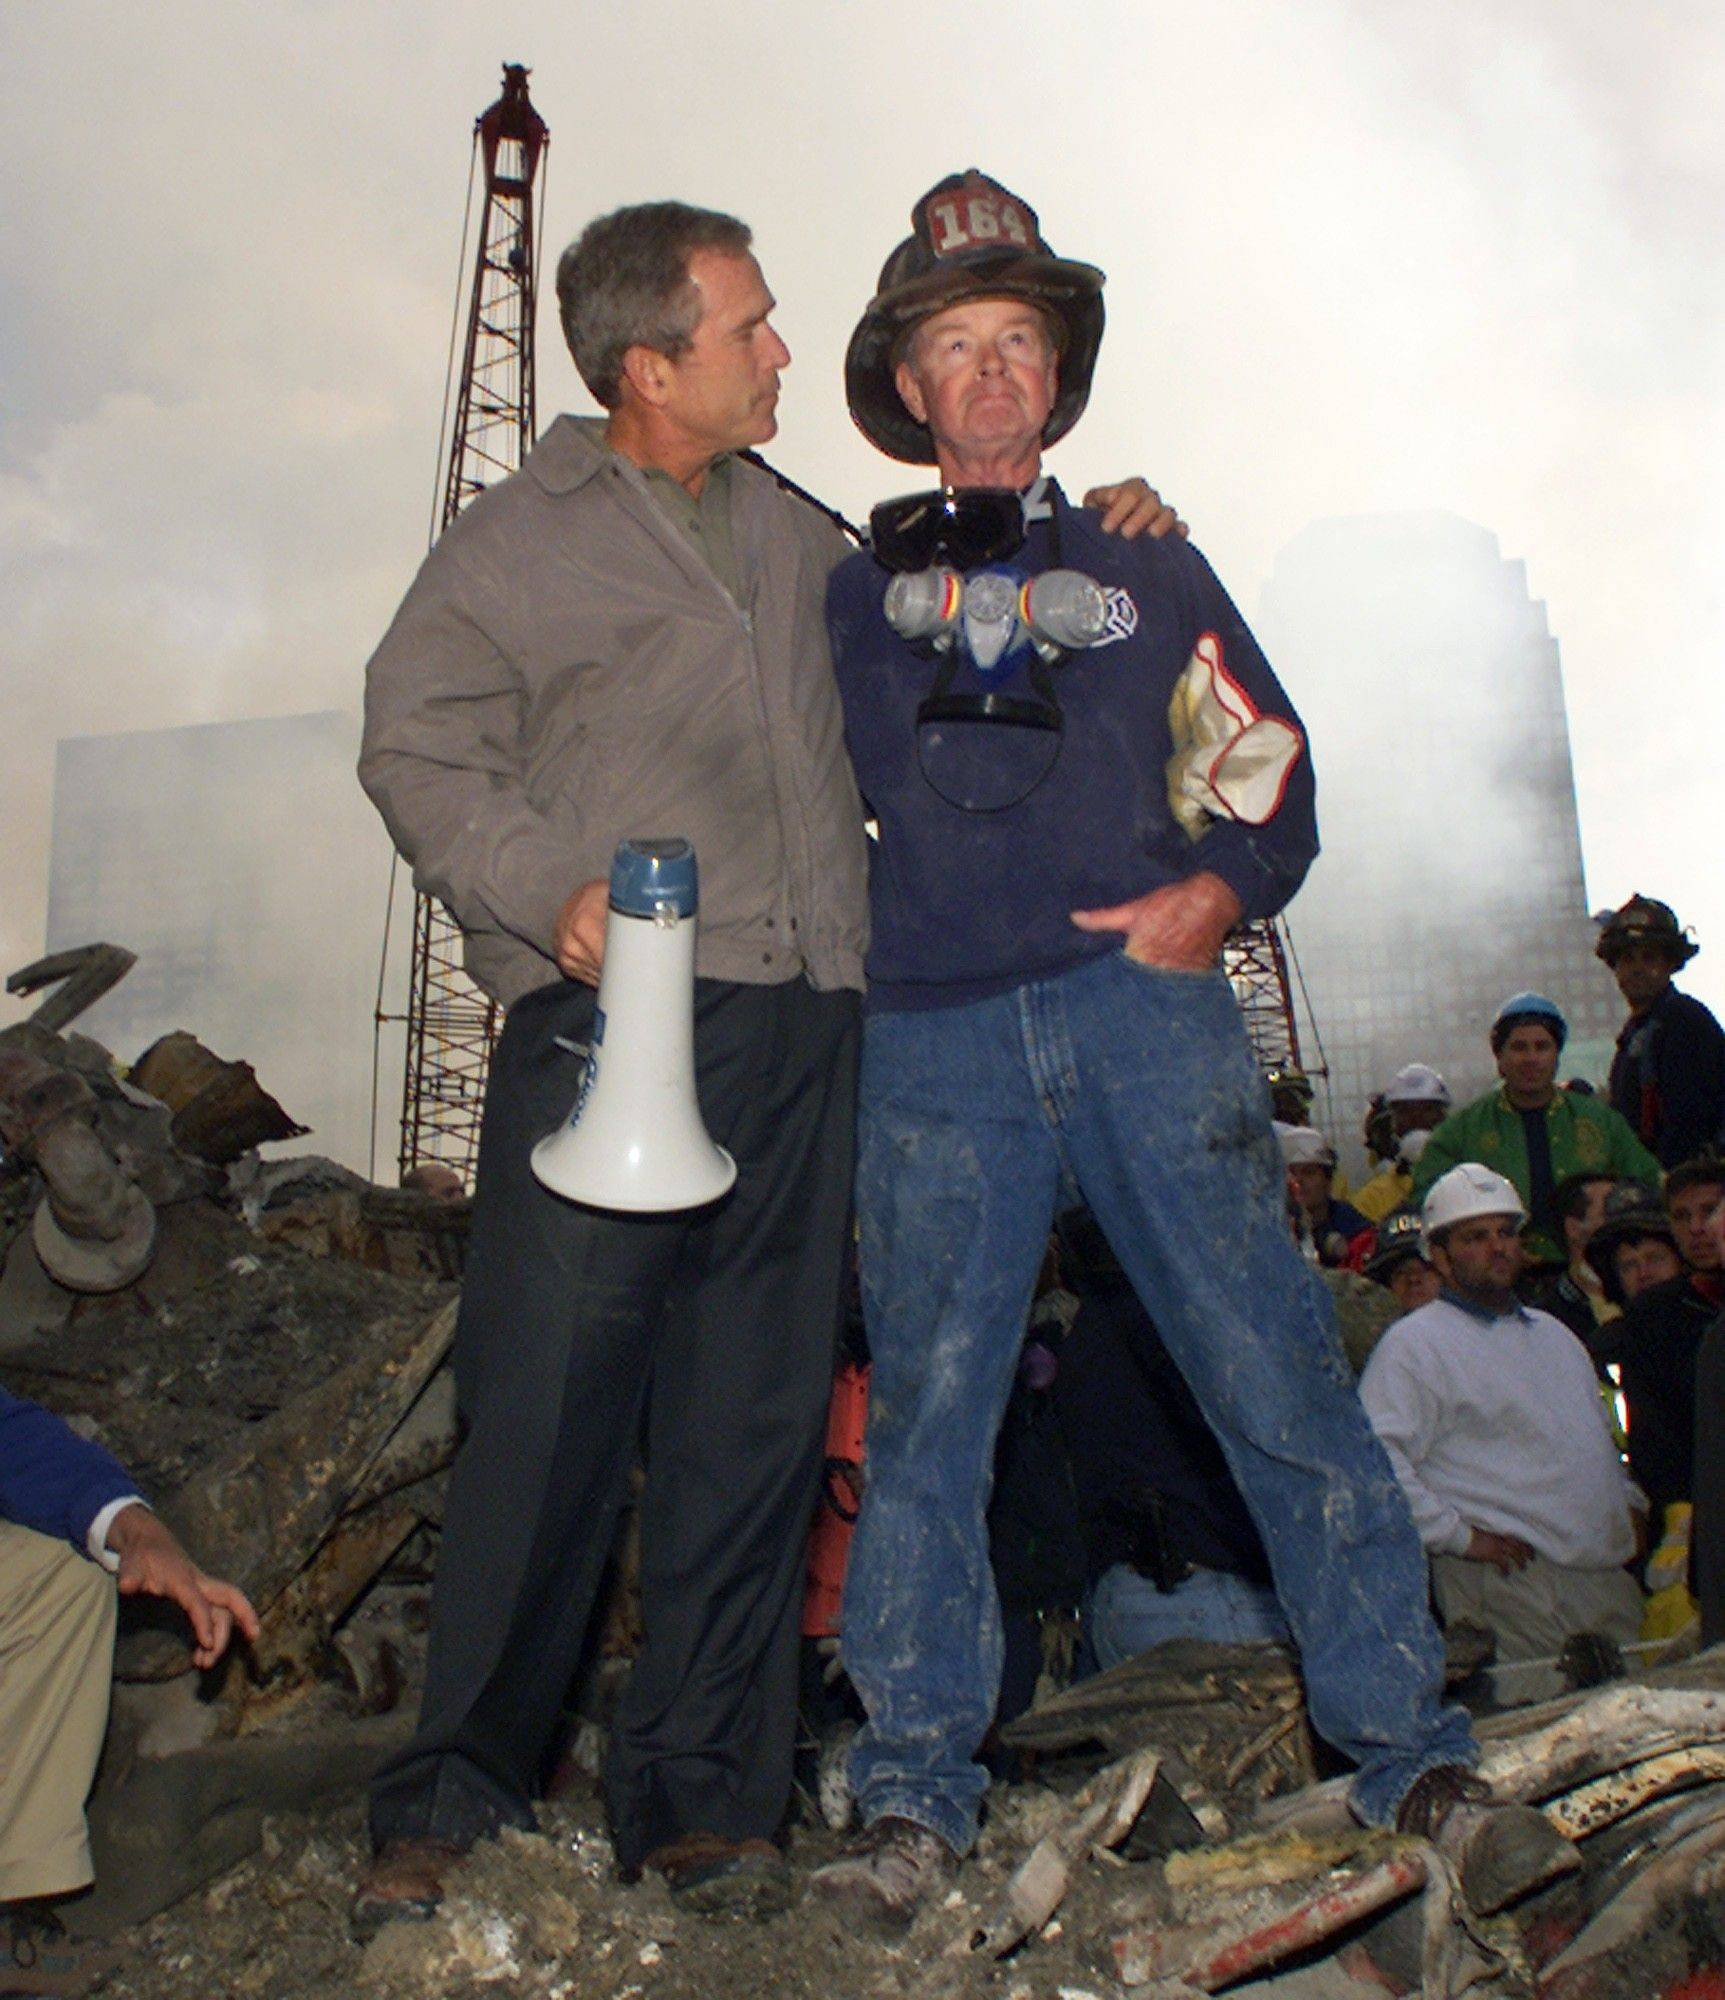 President George W. Bush puts his arm around firefighter Bob Beckwith while standing in front of the World Trade Center in New York during a tour of the devastation on Sept. 14, 2001.